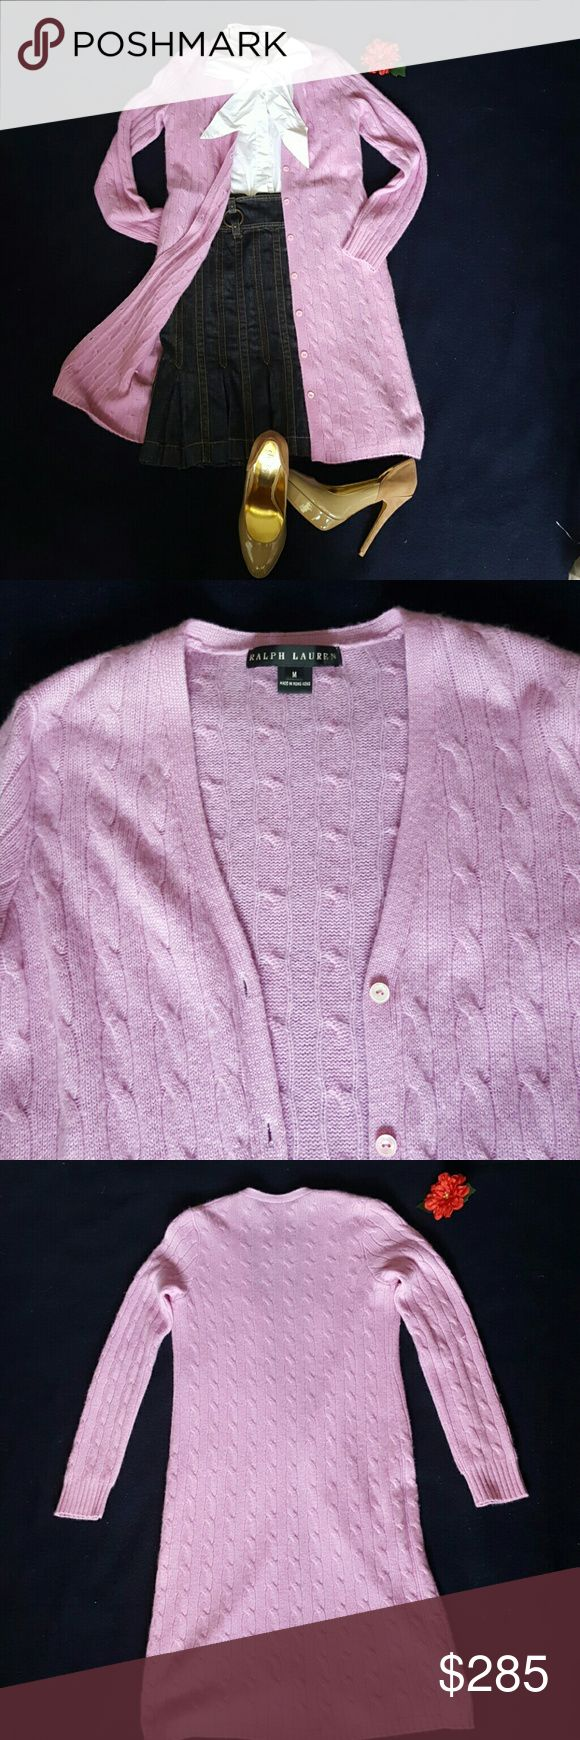 RALPH LAUREN BLACK LABEL Cashmere Sweater RALPH LAUREN BLACK LABEL 100% Cashmere sweater. Magenta to brighten all neutrals. Super soft and comfortable.  Take it to air conditioned office or glam evening.  Gently worn. Excellent condition. Ralph Lauren Black Label Sweaters